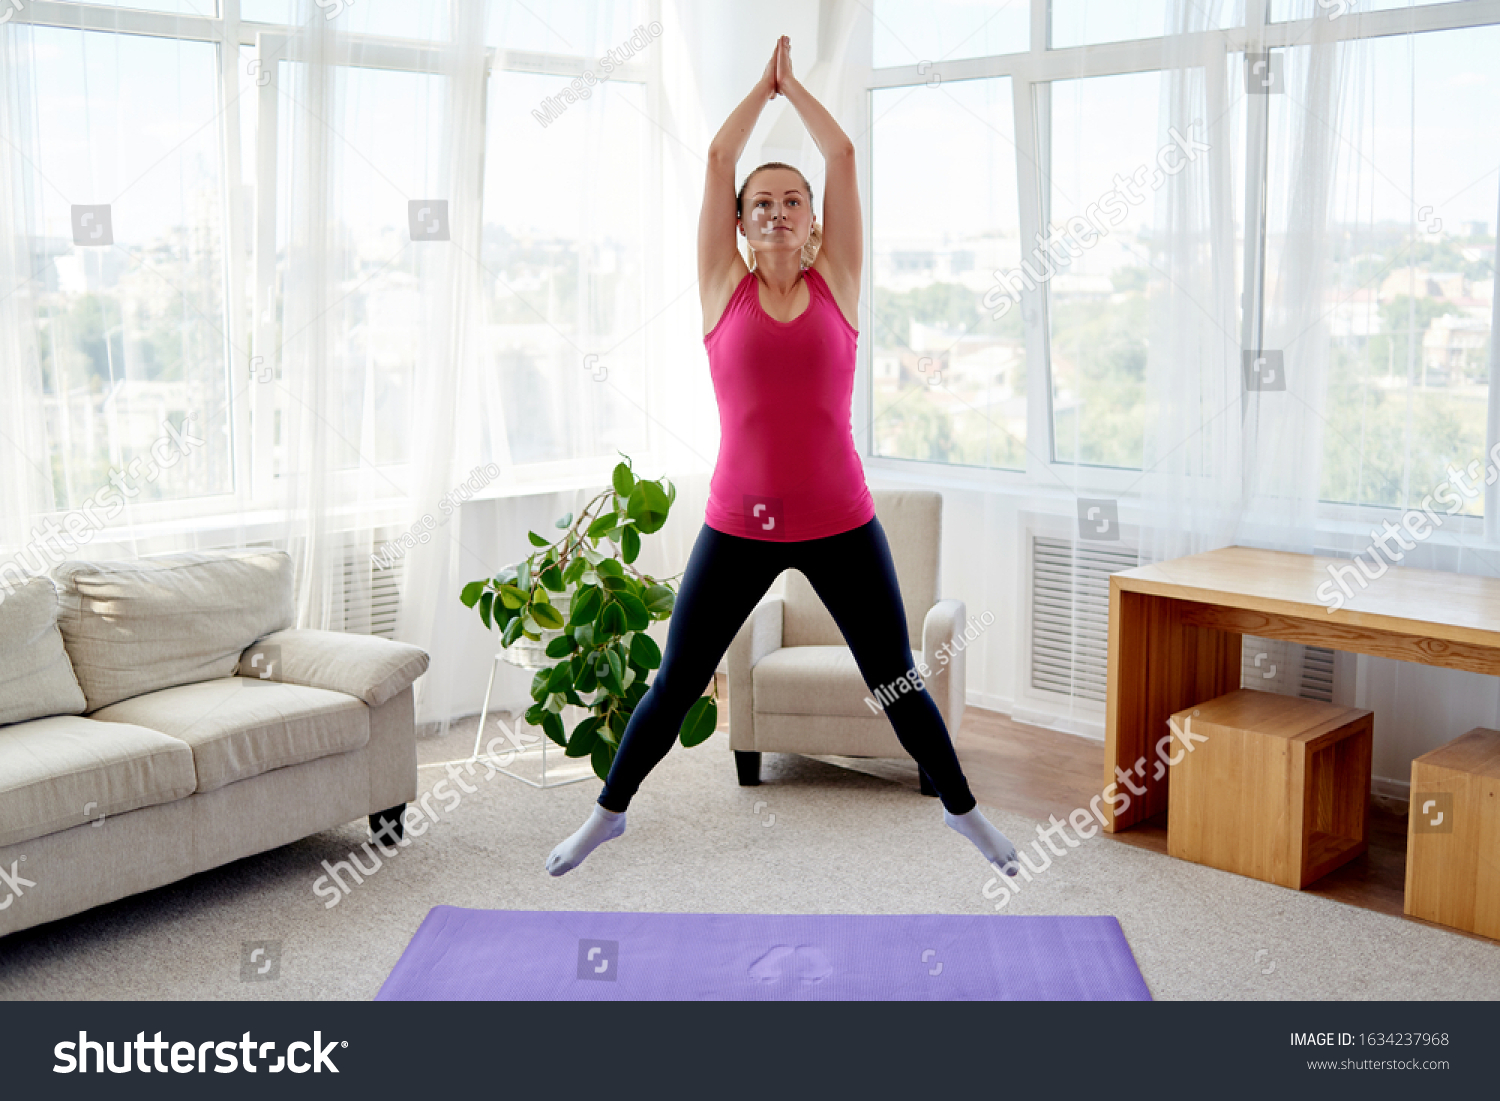 Young fitness woman doing jumping jacks or star jump exercise at home, copy space. Girl working out, full length portrait. Healthy lifestyle concept #1634237968